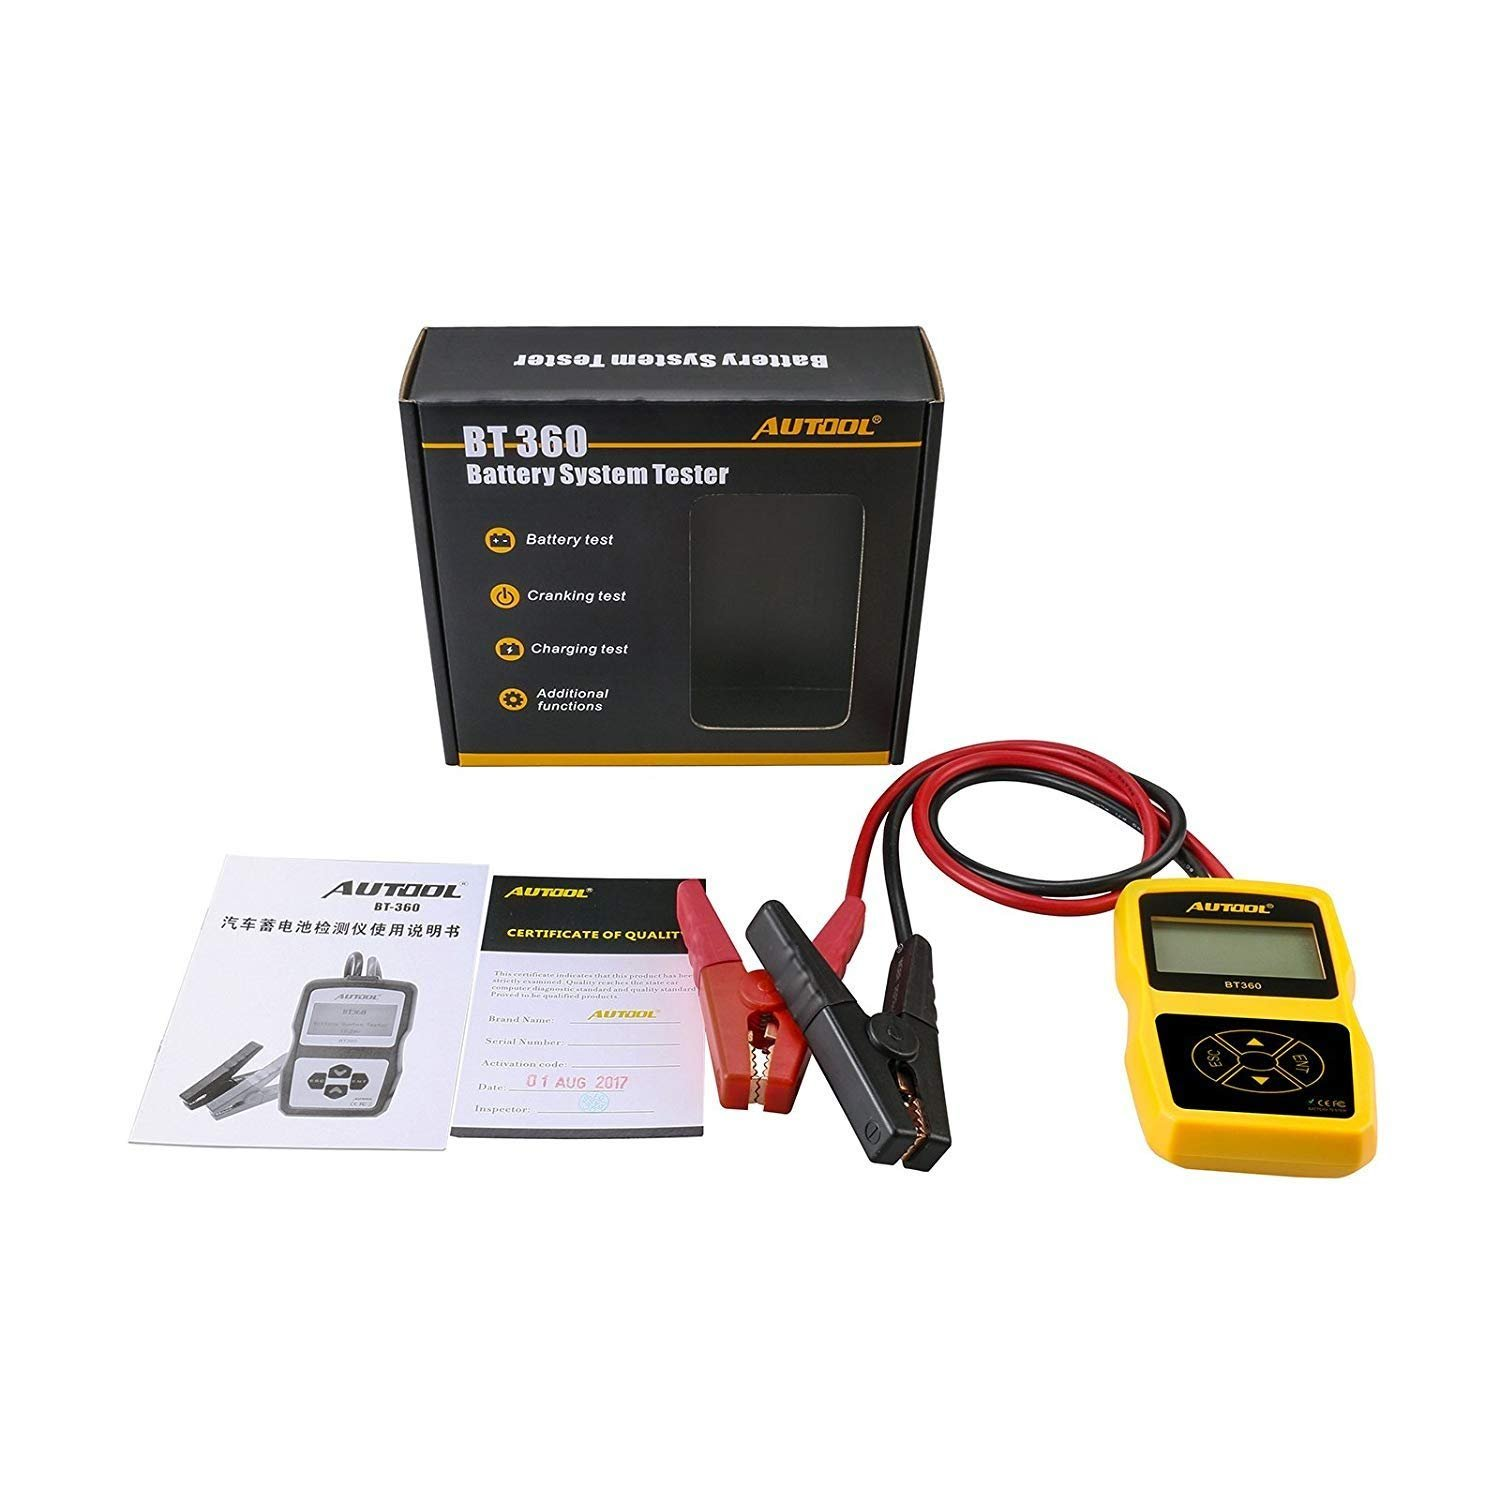 AUTOOL Auto Battery System Tester CCA 100-2400 Bad Cell Test for Regular Flooded, Auto Cranking and Charging System Diagnostic Analyzer for Domestic Cars, Boats by AUTOOL (Image #7)